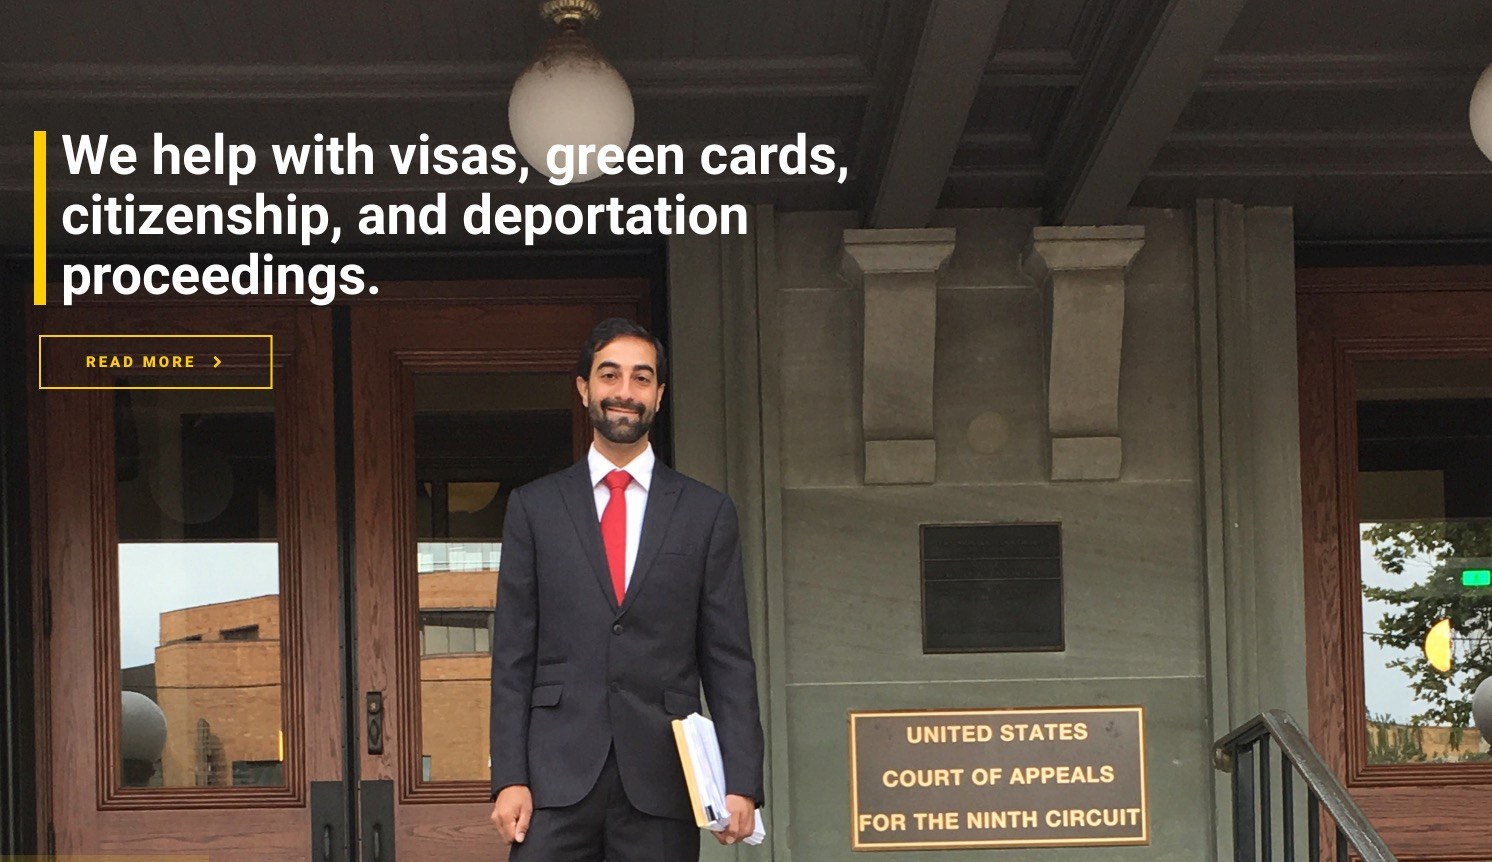 Help with Green Cards, Citizenship, and Deportation Proceedings